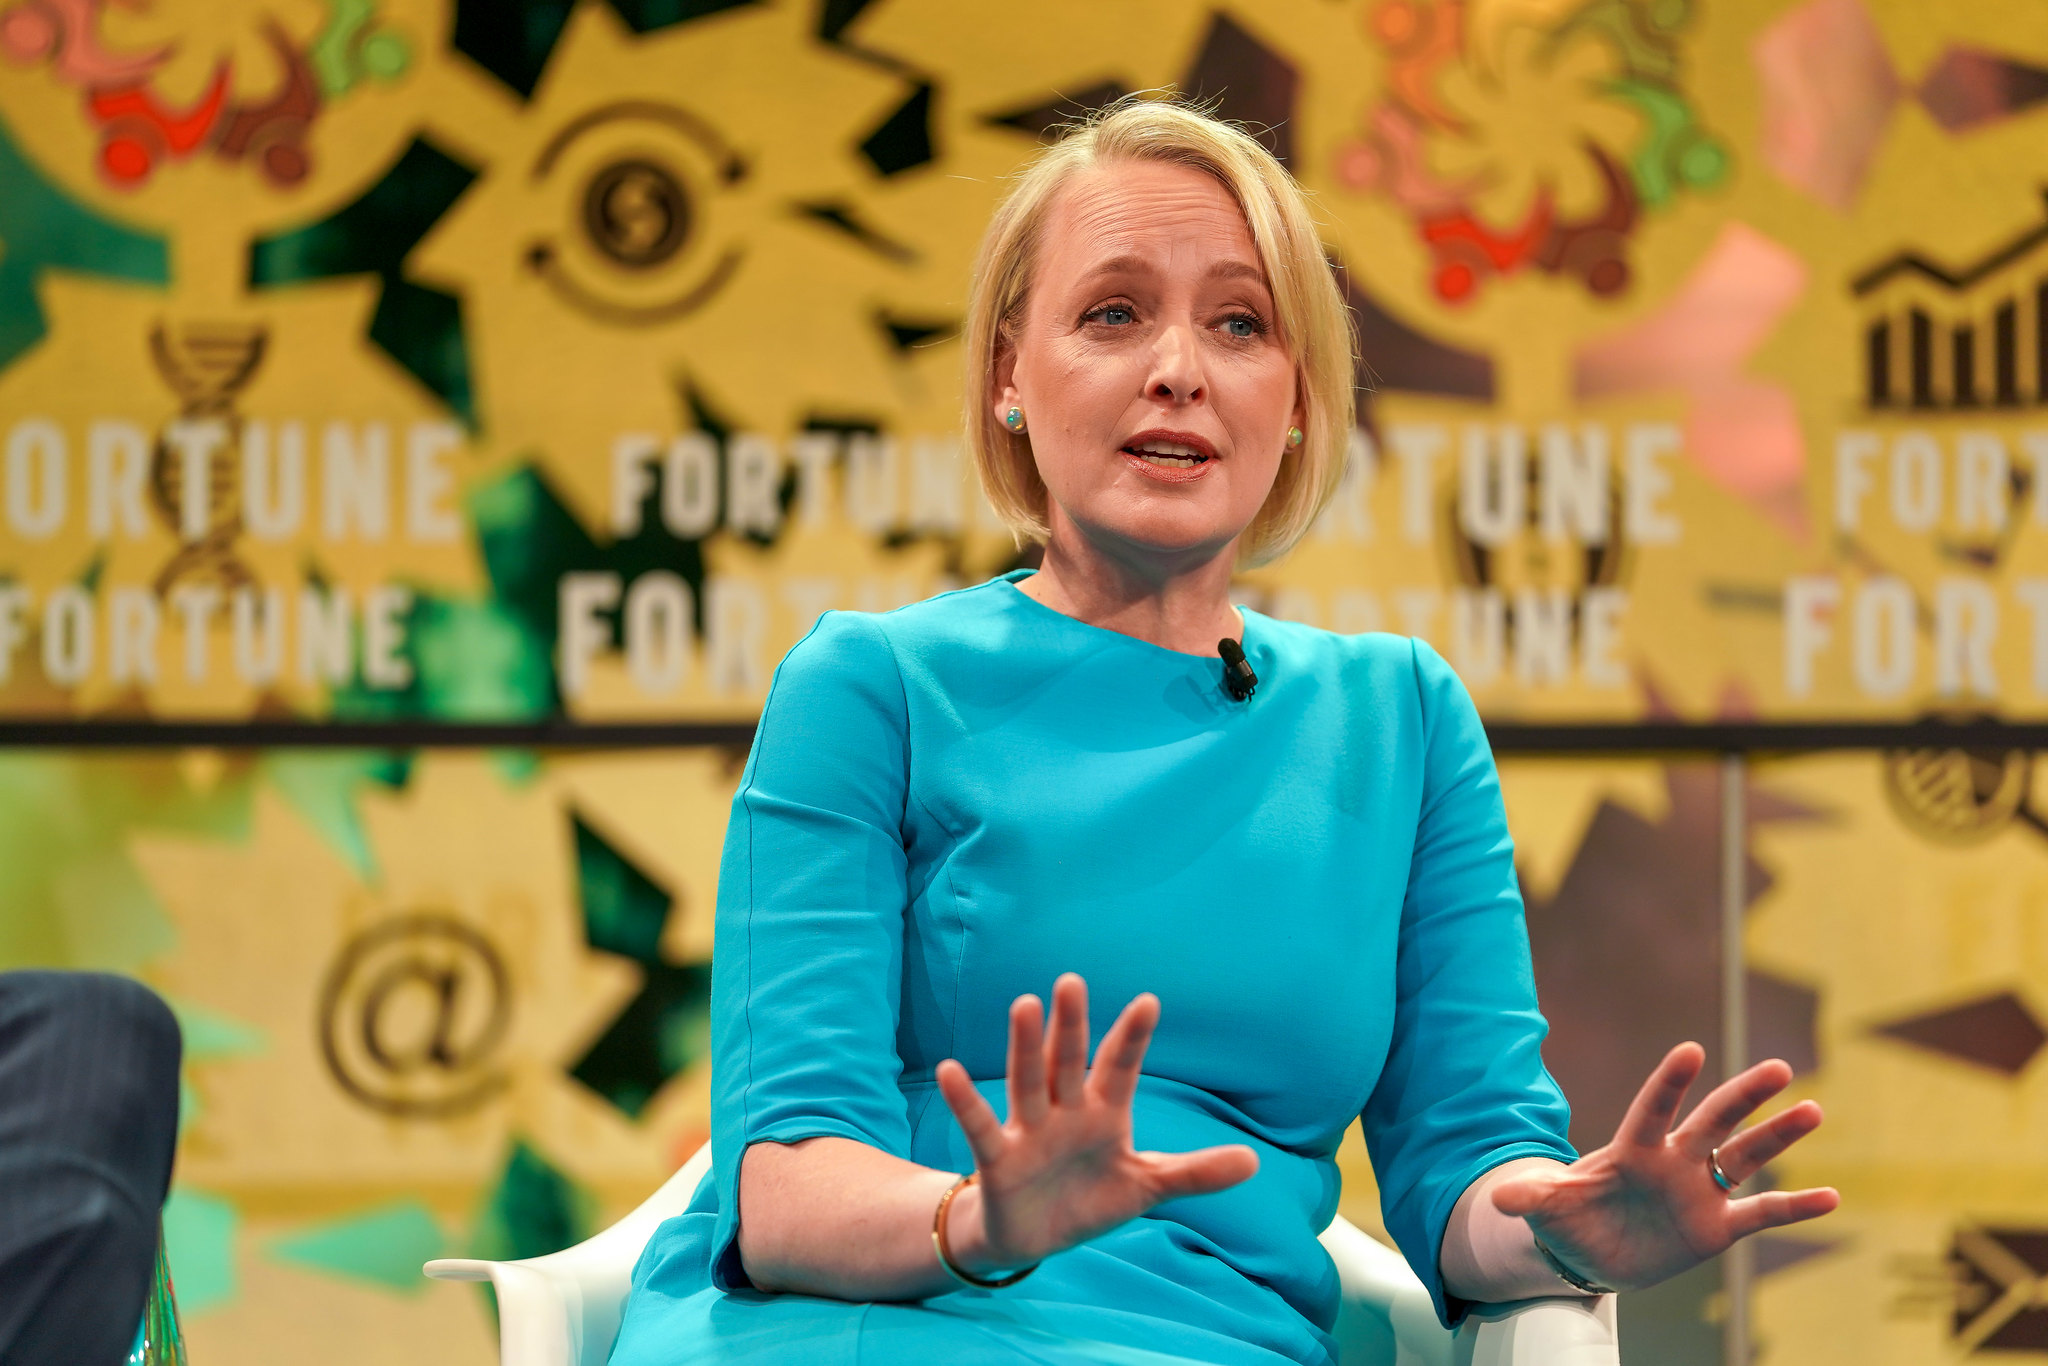 Julie Sweet, CEO of Accenture North America, speaking at the 2018 Fortune Global Forum in Toronto.